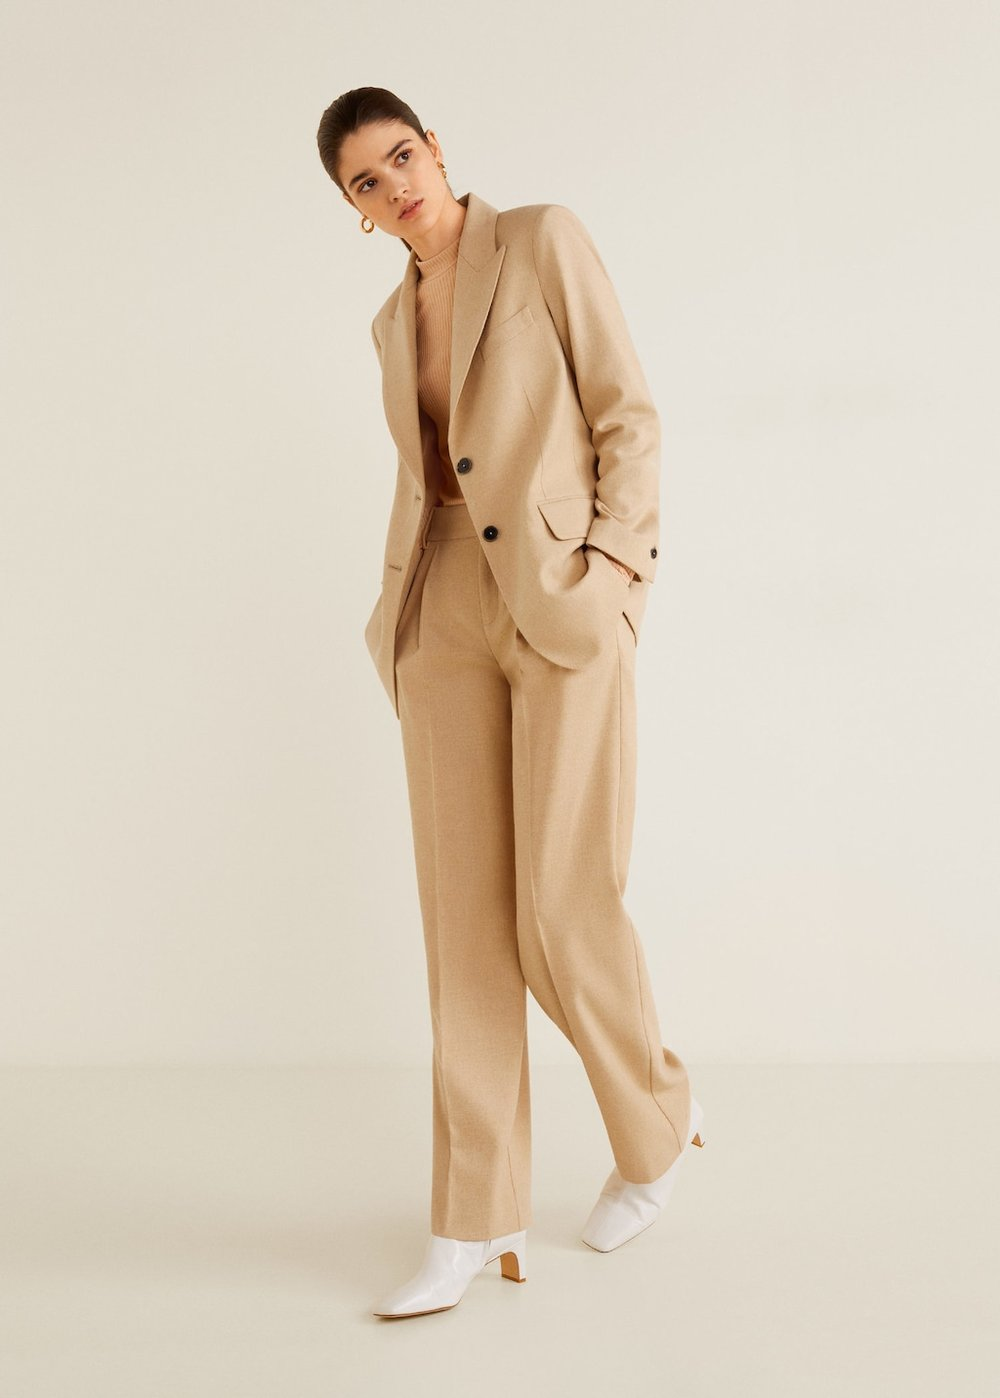 MANGO oatmeal suit jacket, $149.95   MANGO oatmeal suit pants, $99.95